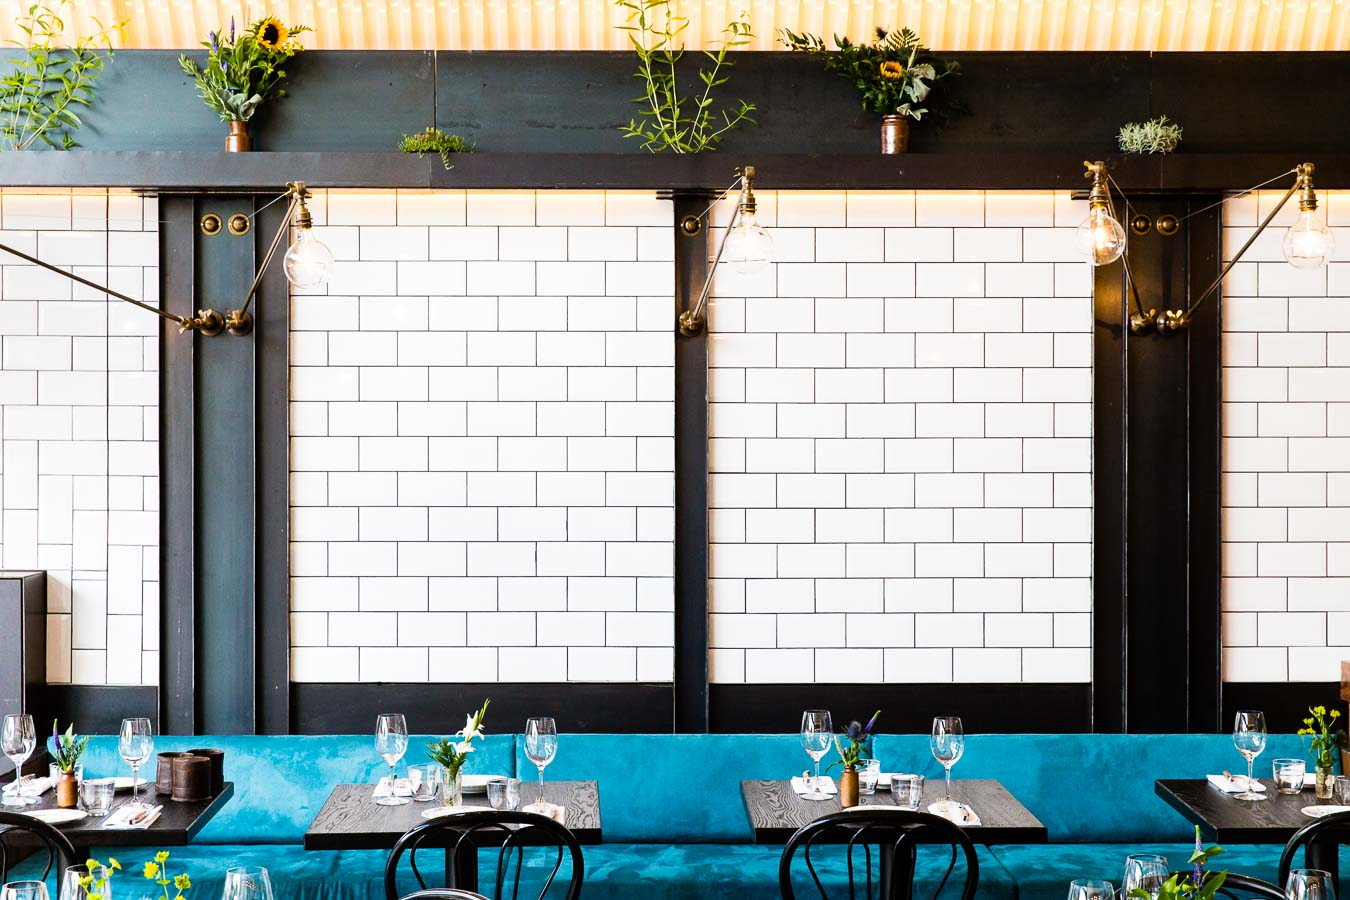 White tiled wall of a restaurant with dark ironwork pillars, blue brushed cotton seating, industrial style lights and potted plants. Paradise Garage by Robin Gill